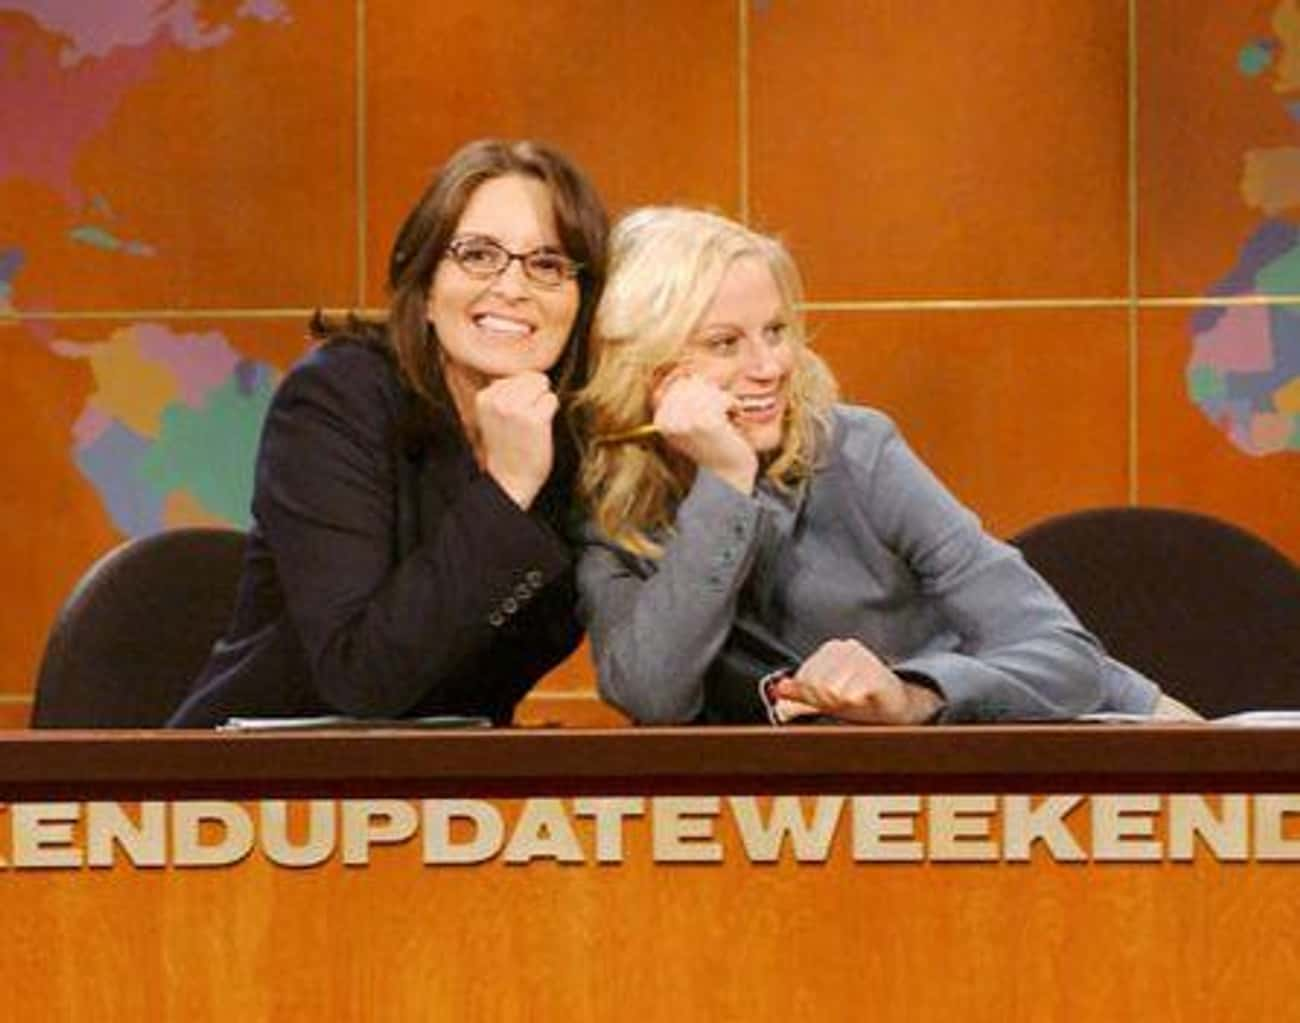 Tina Fey And Amy Poehler is listed (or ranked) 3 on the list Famous Co-Stars Who Became Besties In Real Life